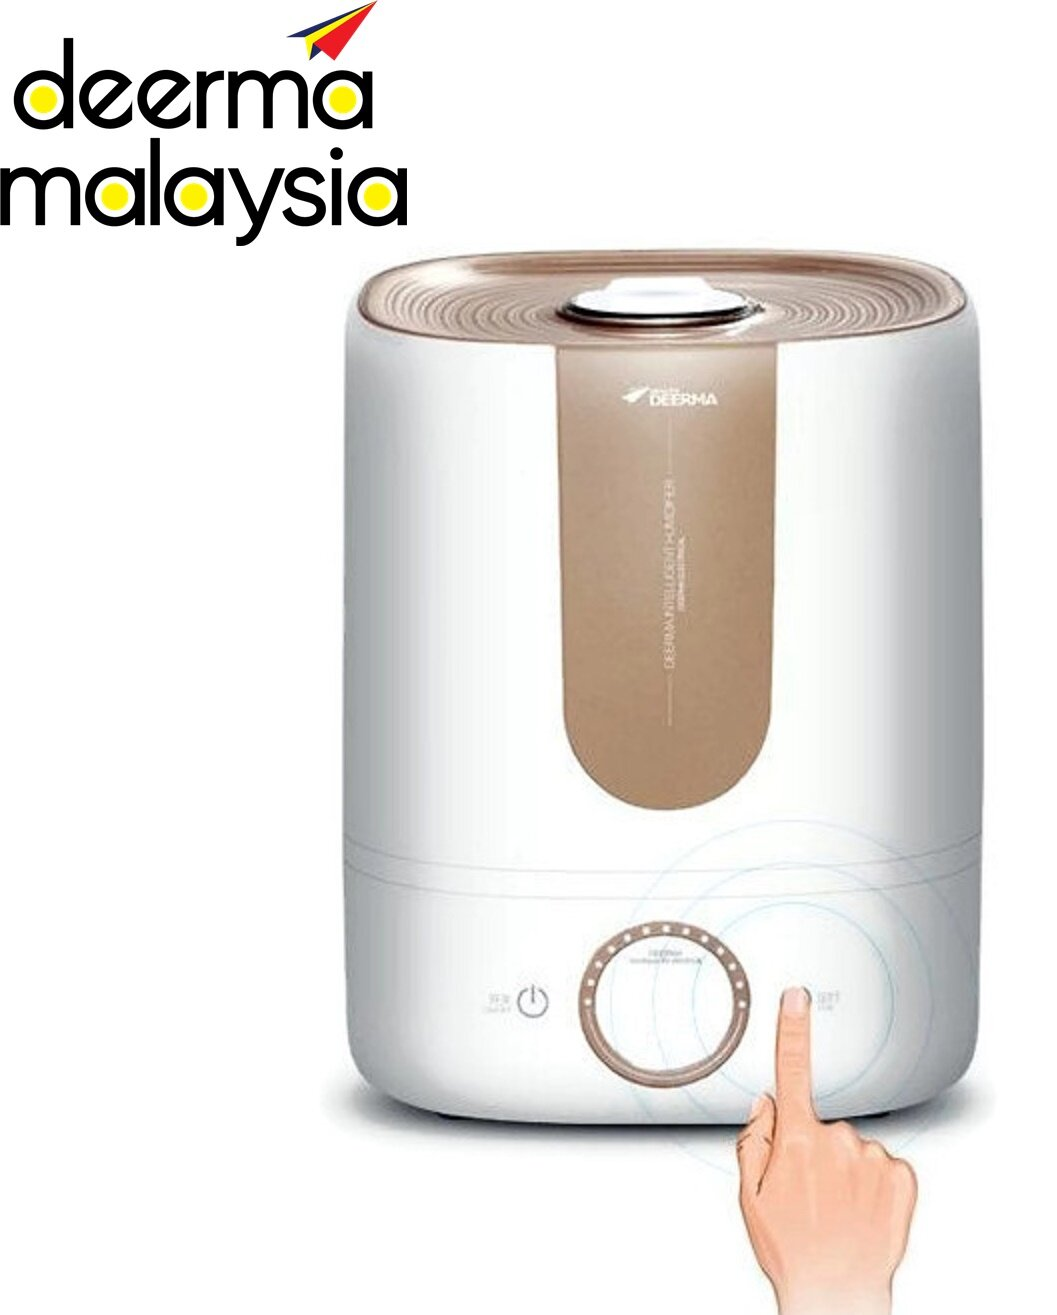 Deerma F525S / F525 Air Humidifier Digital Elegant 5L Water Tank